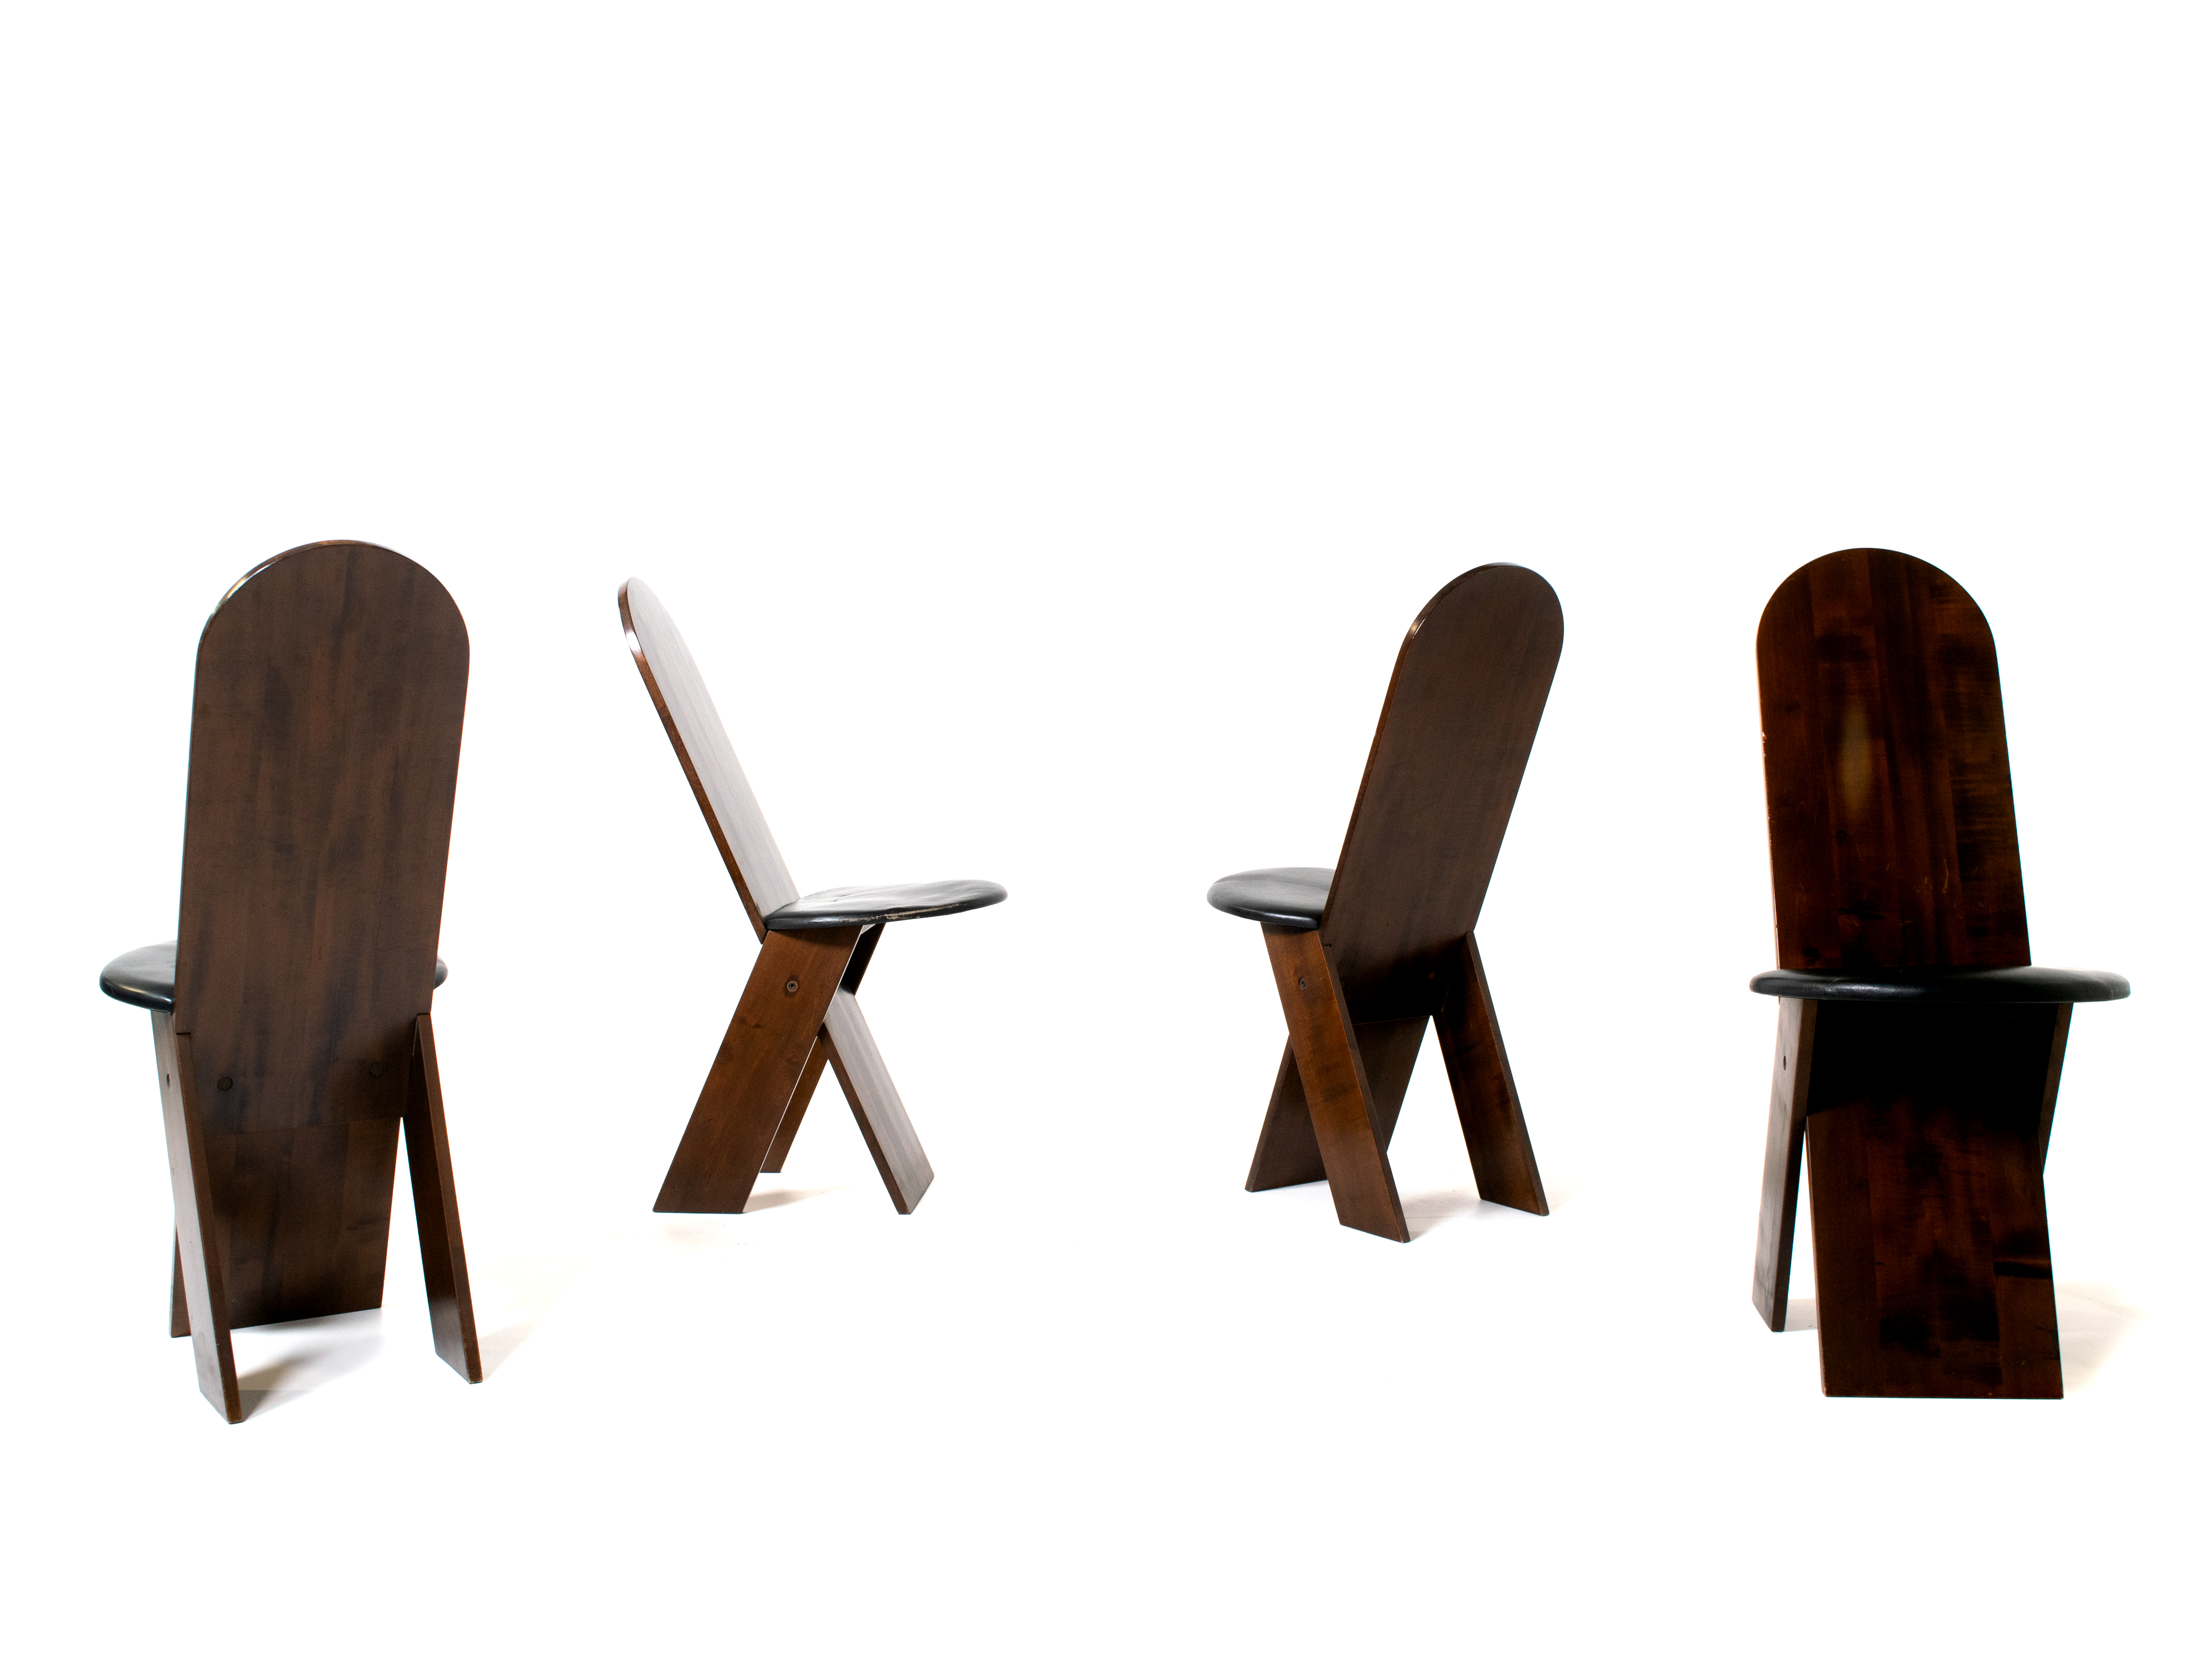 Marco Zanuso Dining Chairs for Poggi, Italy 1970s